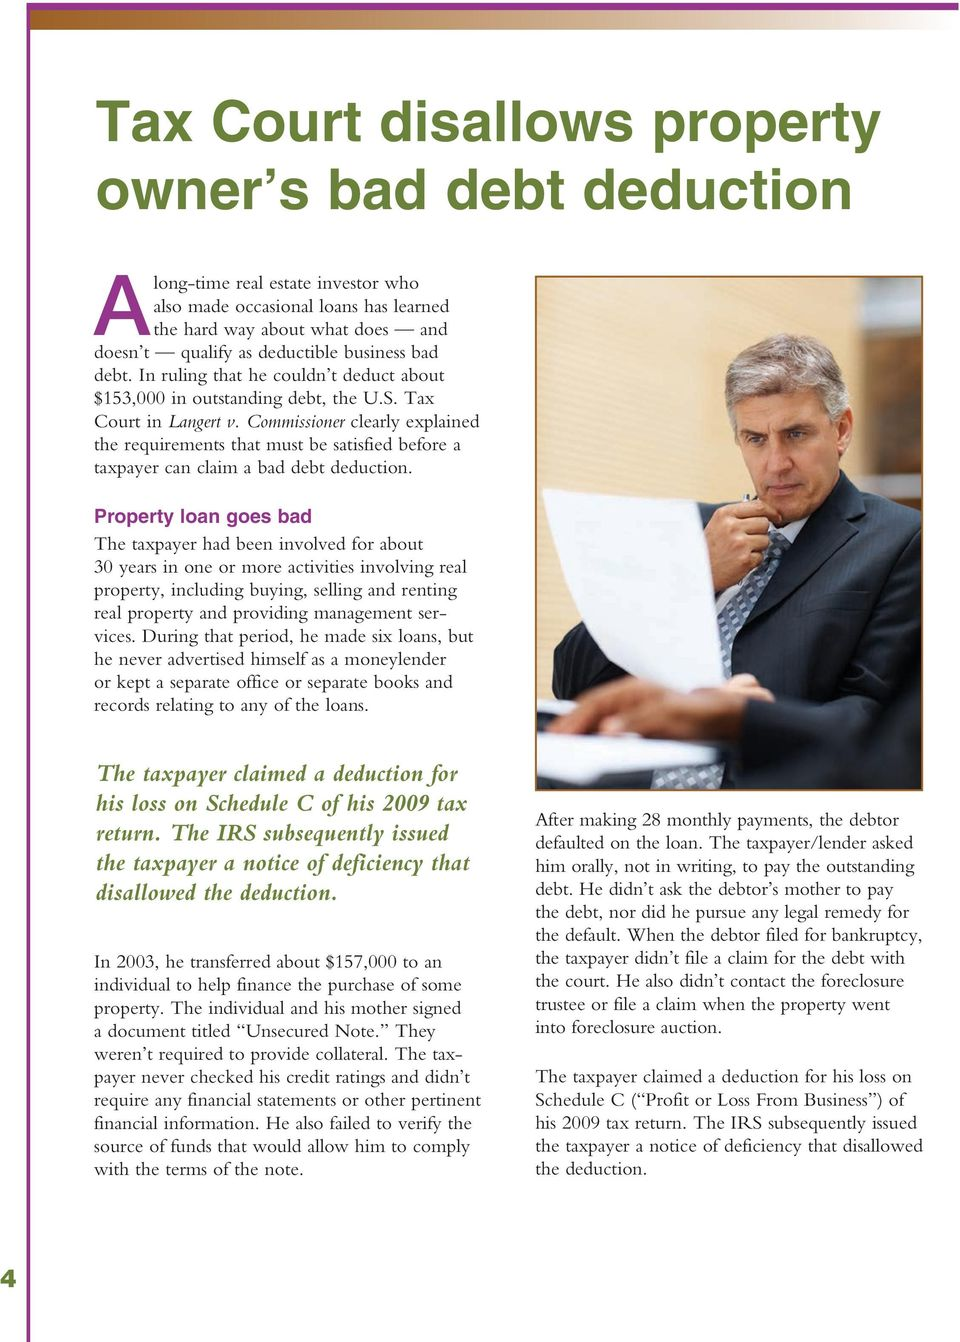 Commissioner clearly explained the requirements that must be satisfied before a taxpayer can claim a bad debt deduction.